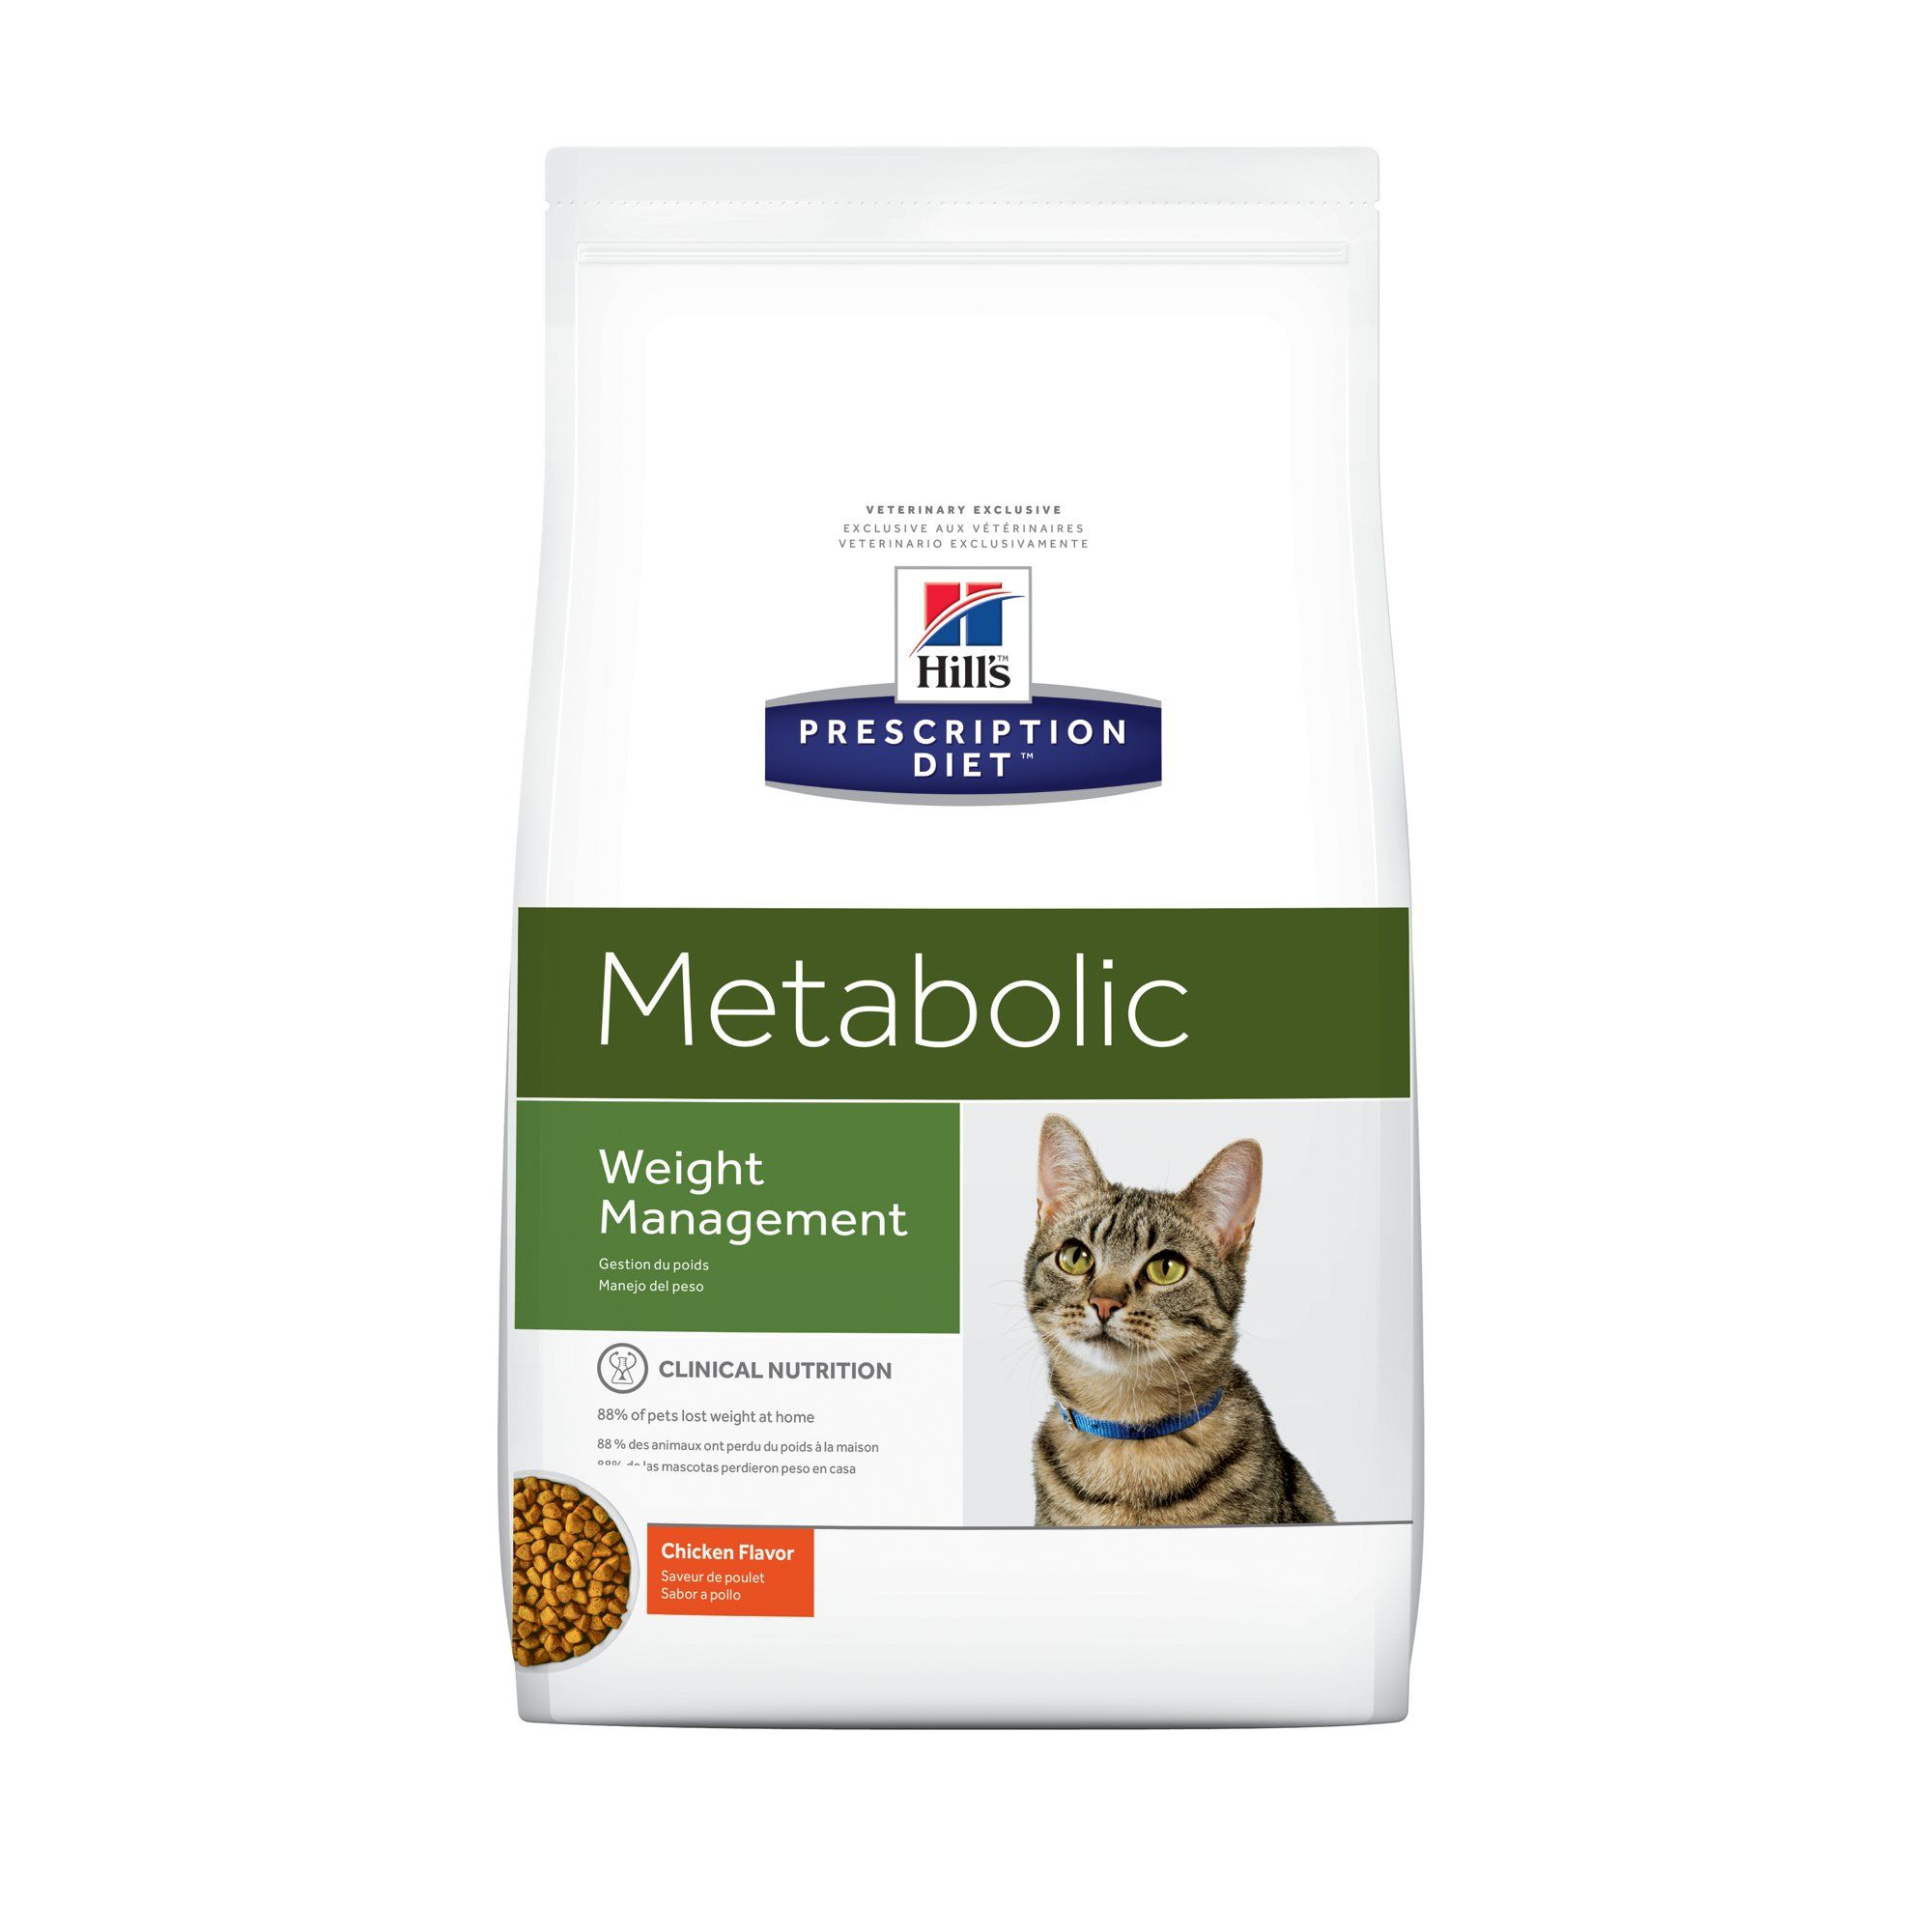 Hill S Prescription Diet Metabolic Weight Management Chicken Flavor Dry Cat Food 8 5 Lbs Bag Dry Cat Food Cat Food Food Animals